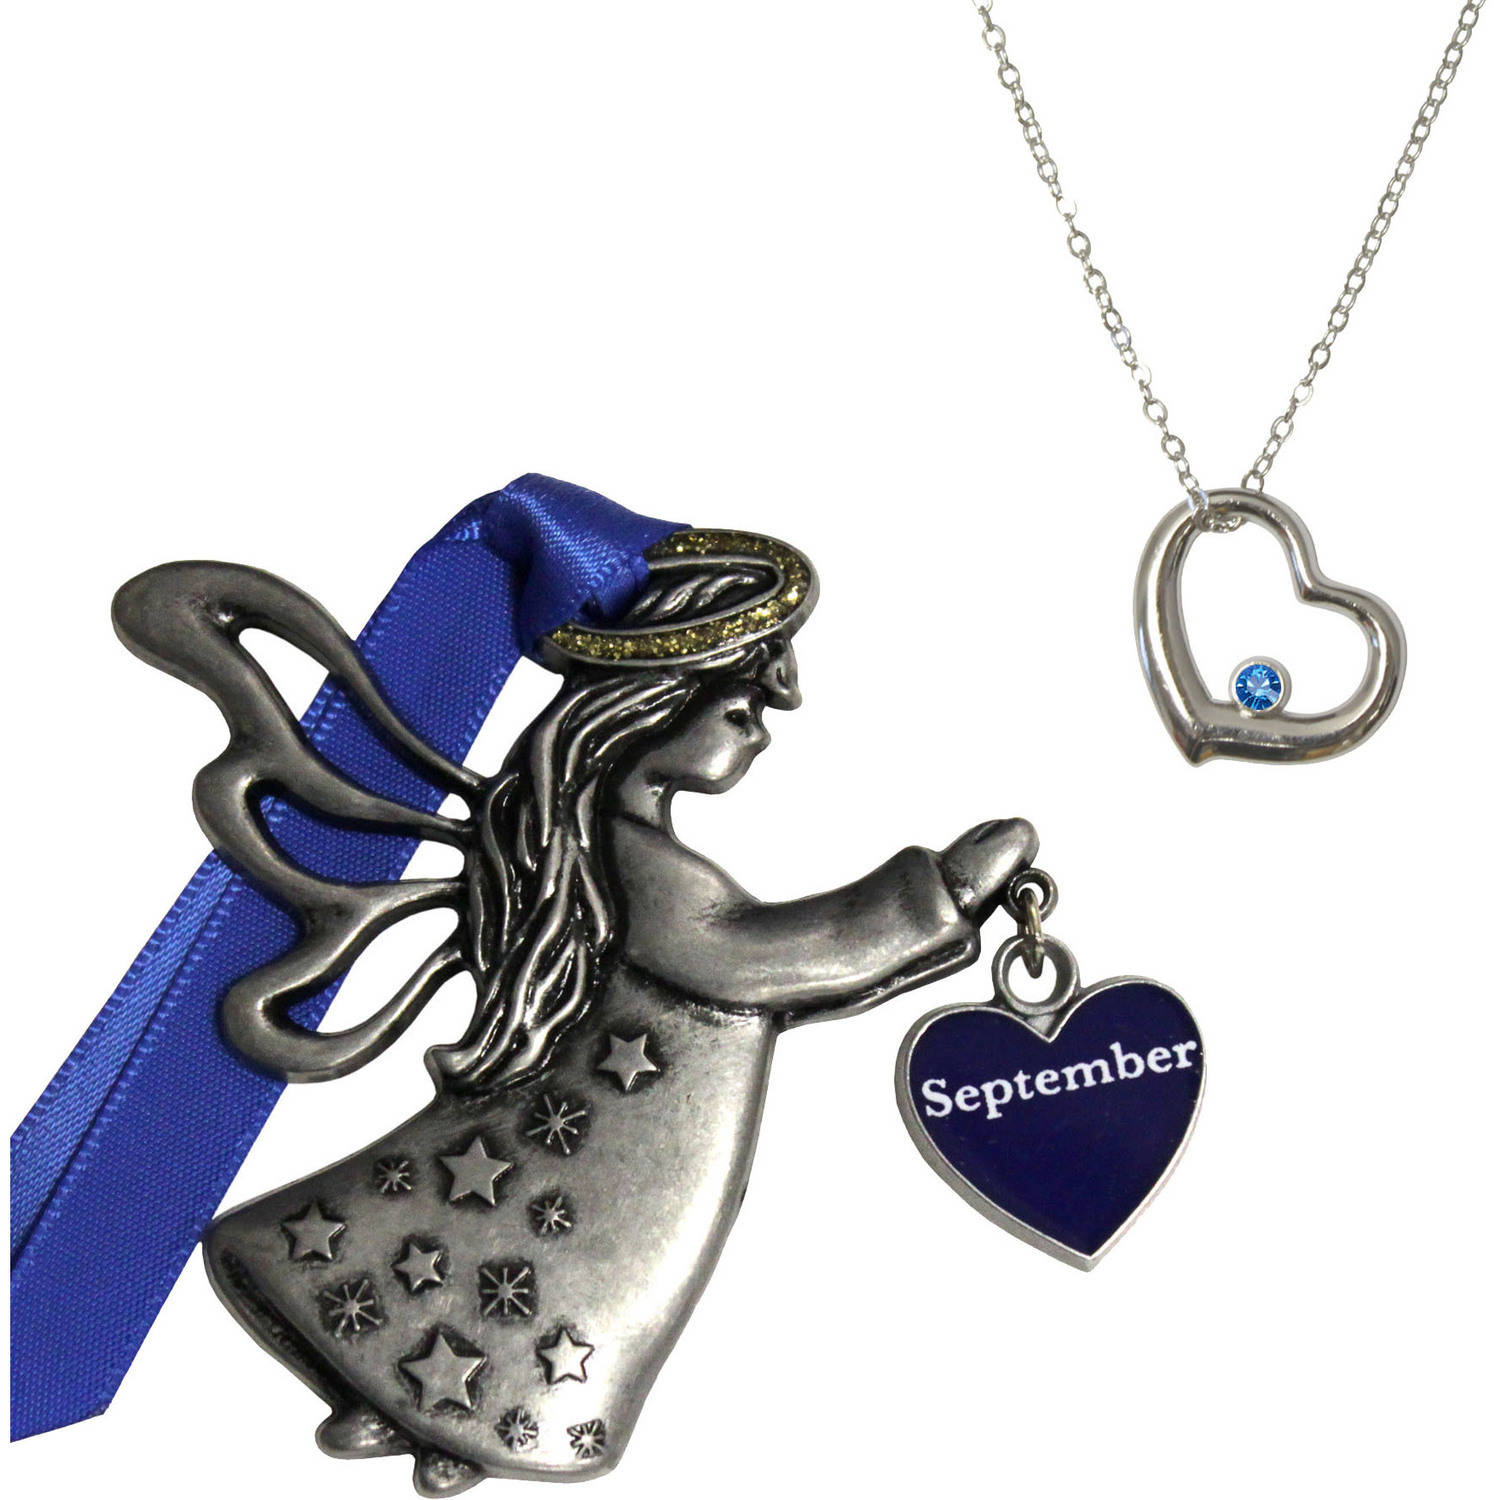 September Birthstone Angel Ornament and Necklace Set